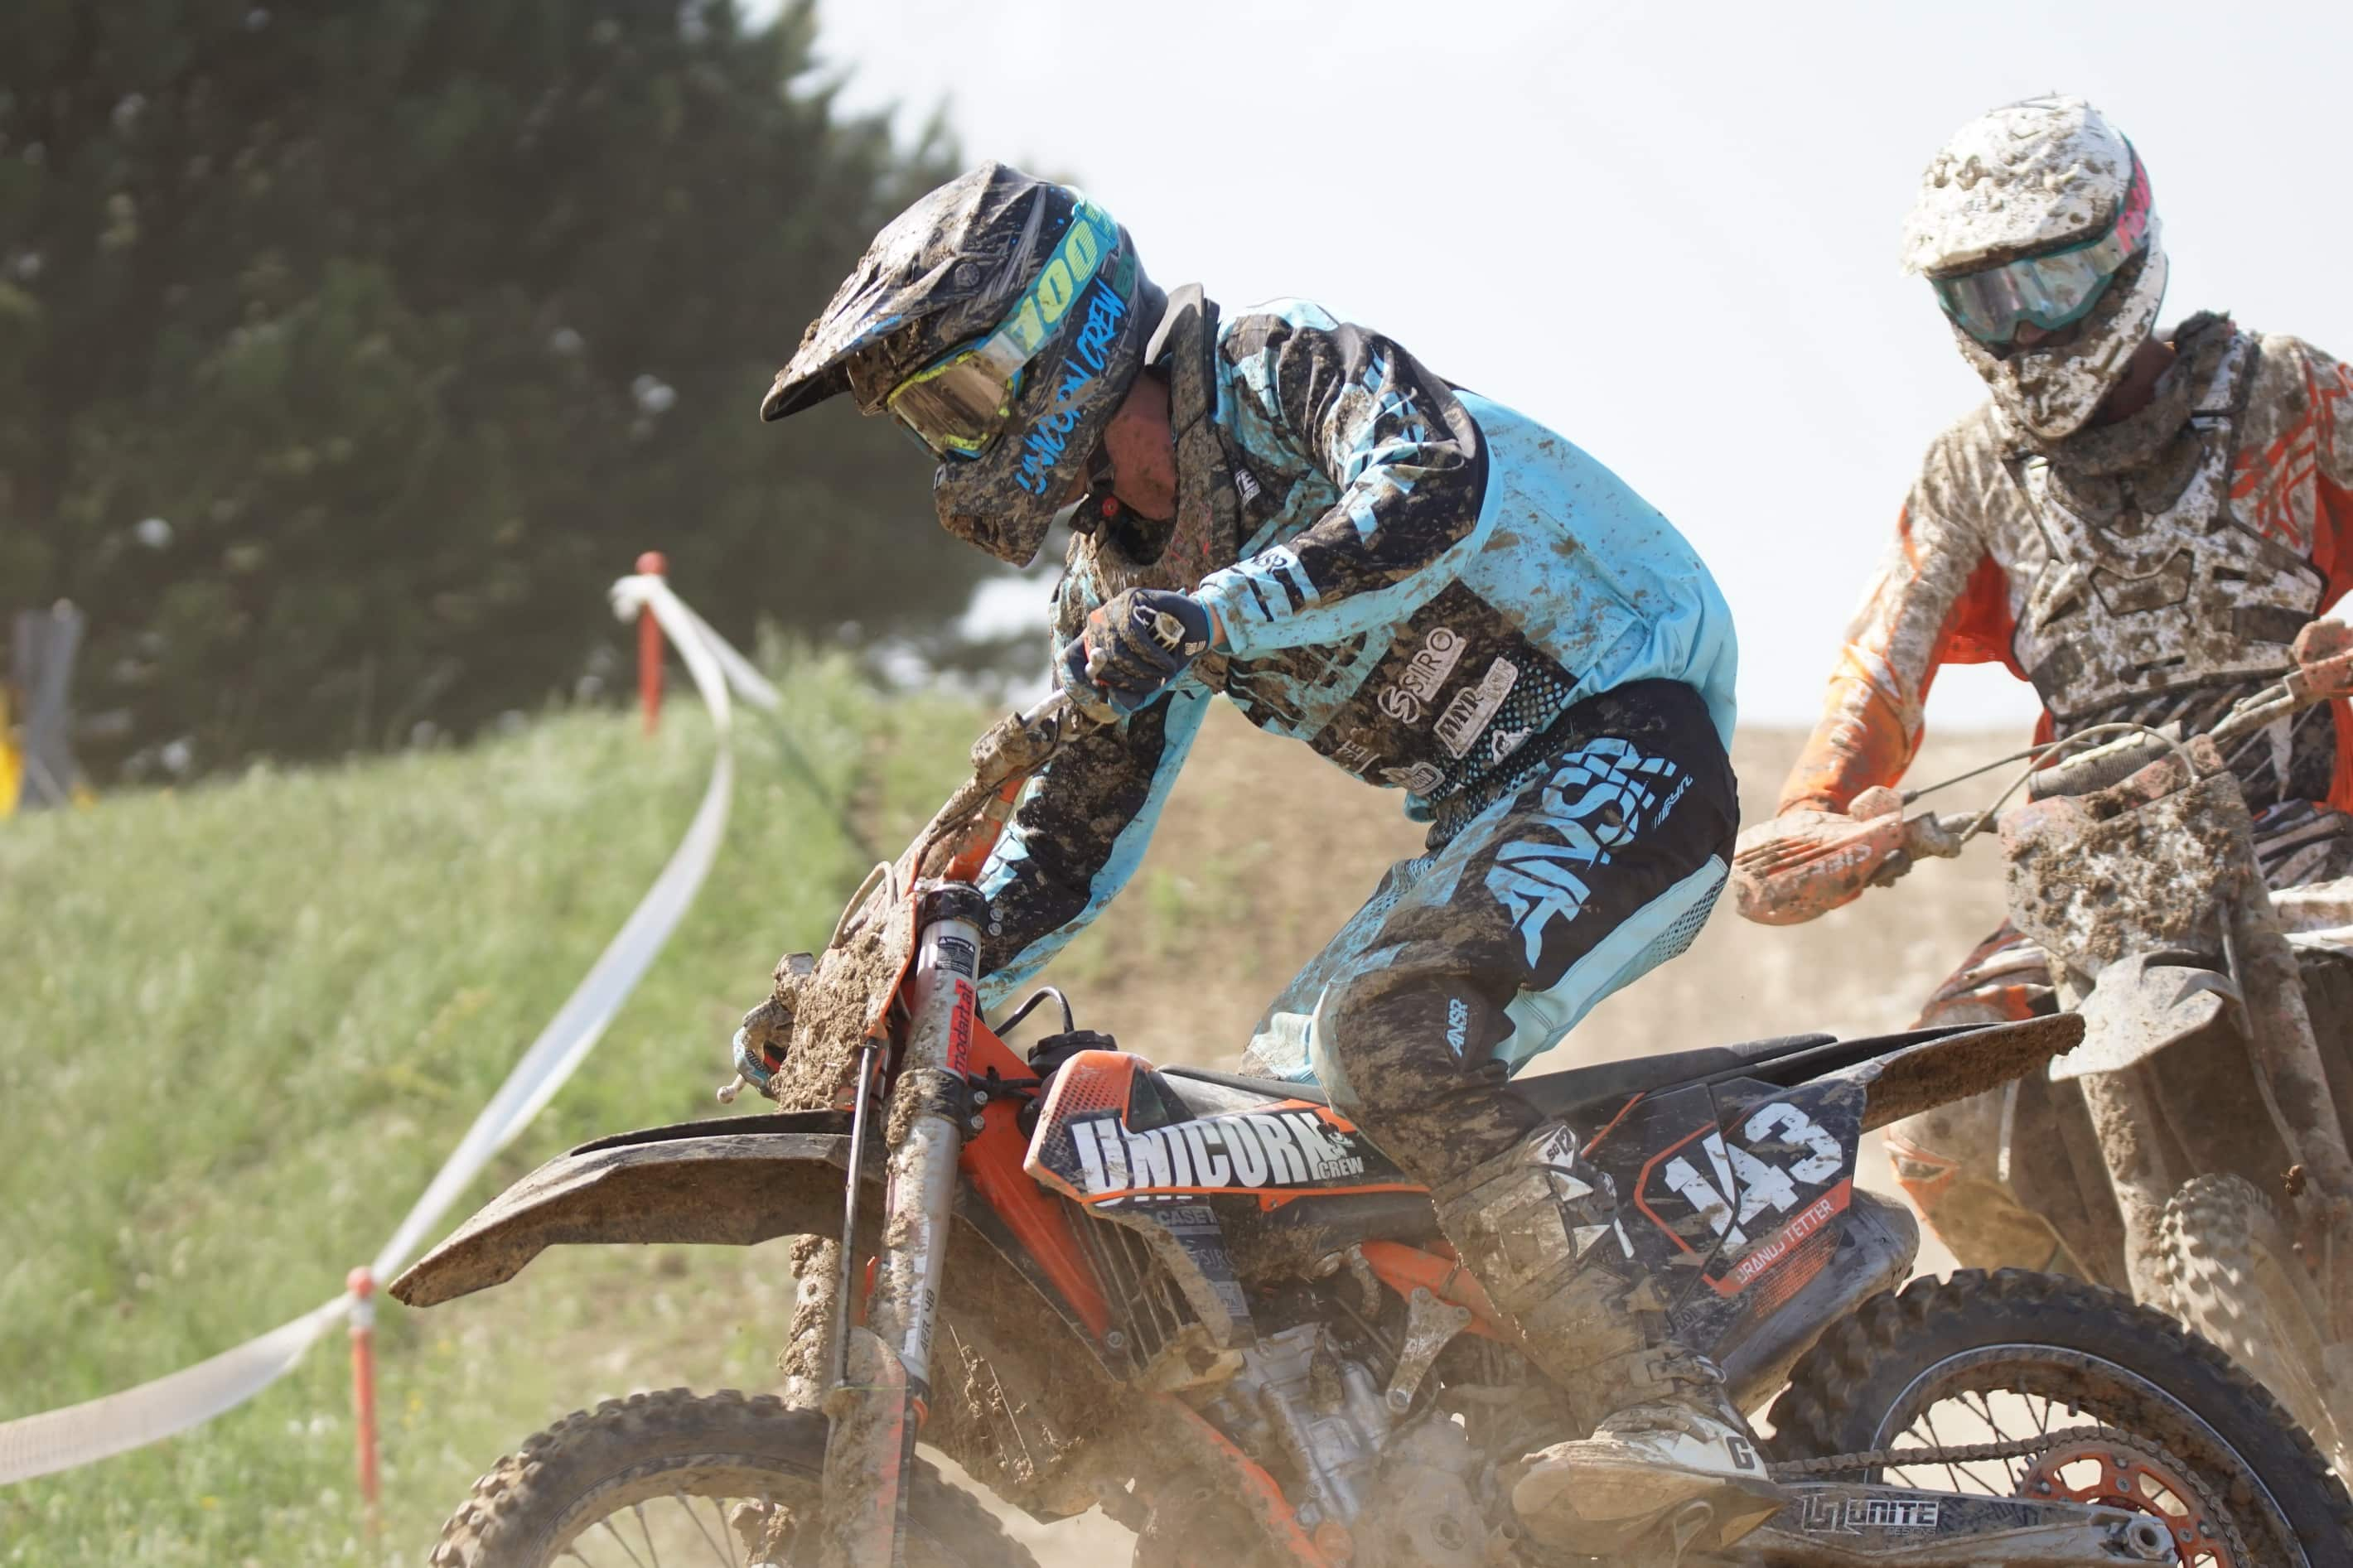 DSC 762_Moto Cross Sittendorf Teil1 am 29.04.2018